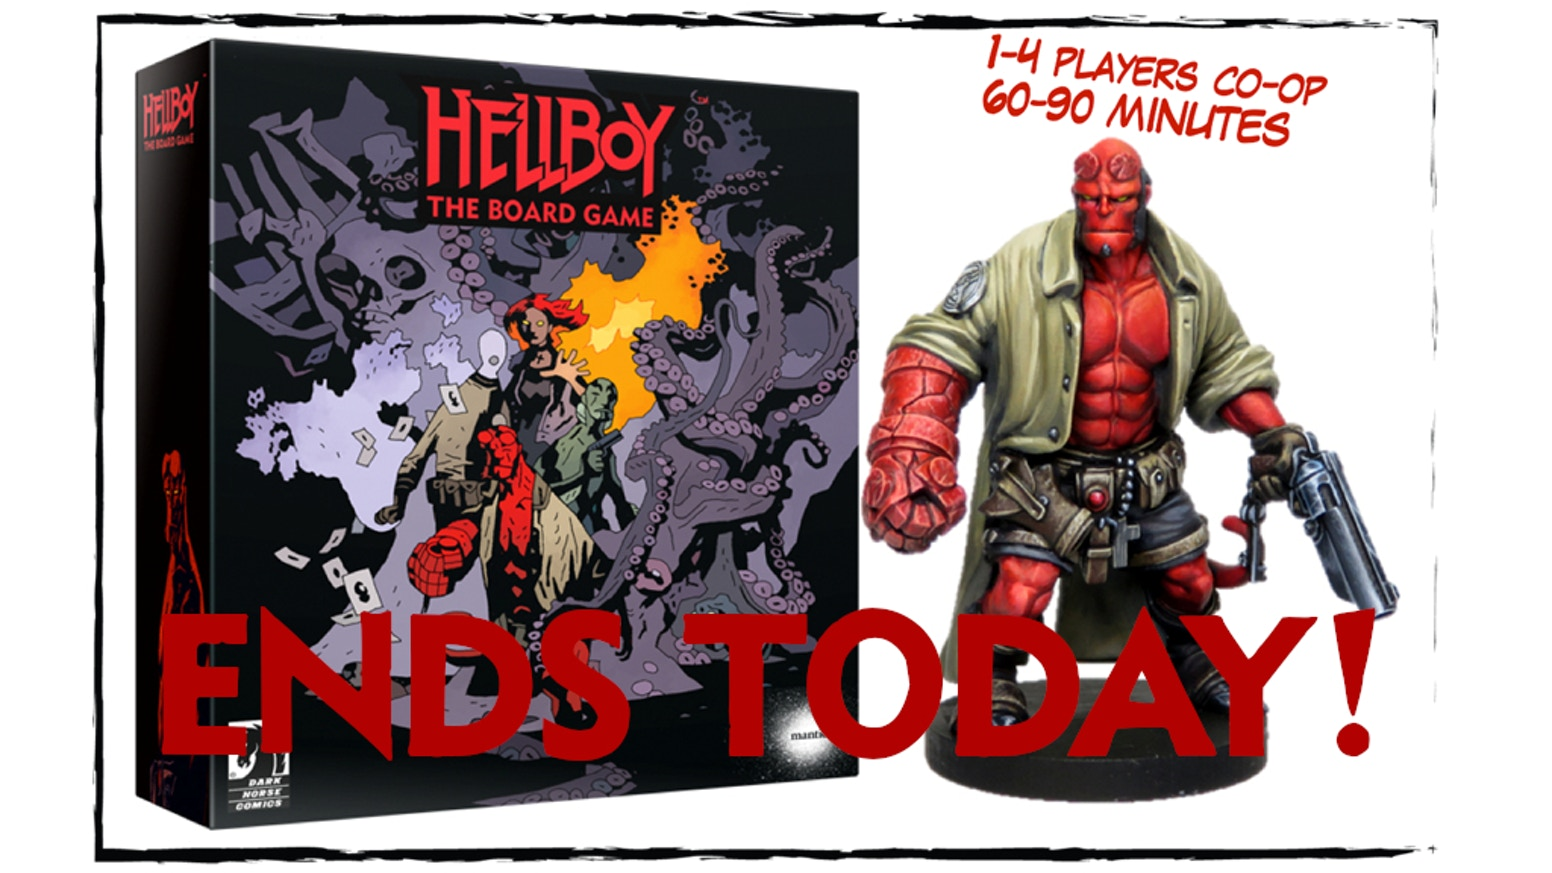 Hellboy: The Board Game is the top crowdfunding project launched today. Hellboy: The Board Game raised over $1454343 from 12716 backers. Other top projects include DREVO BladeMaster: Ultimate Keyboard with Programmable Knob, Dungeonrunner: Solitaire Fantasy Card Game,